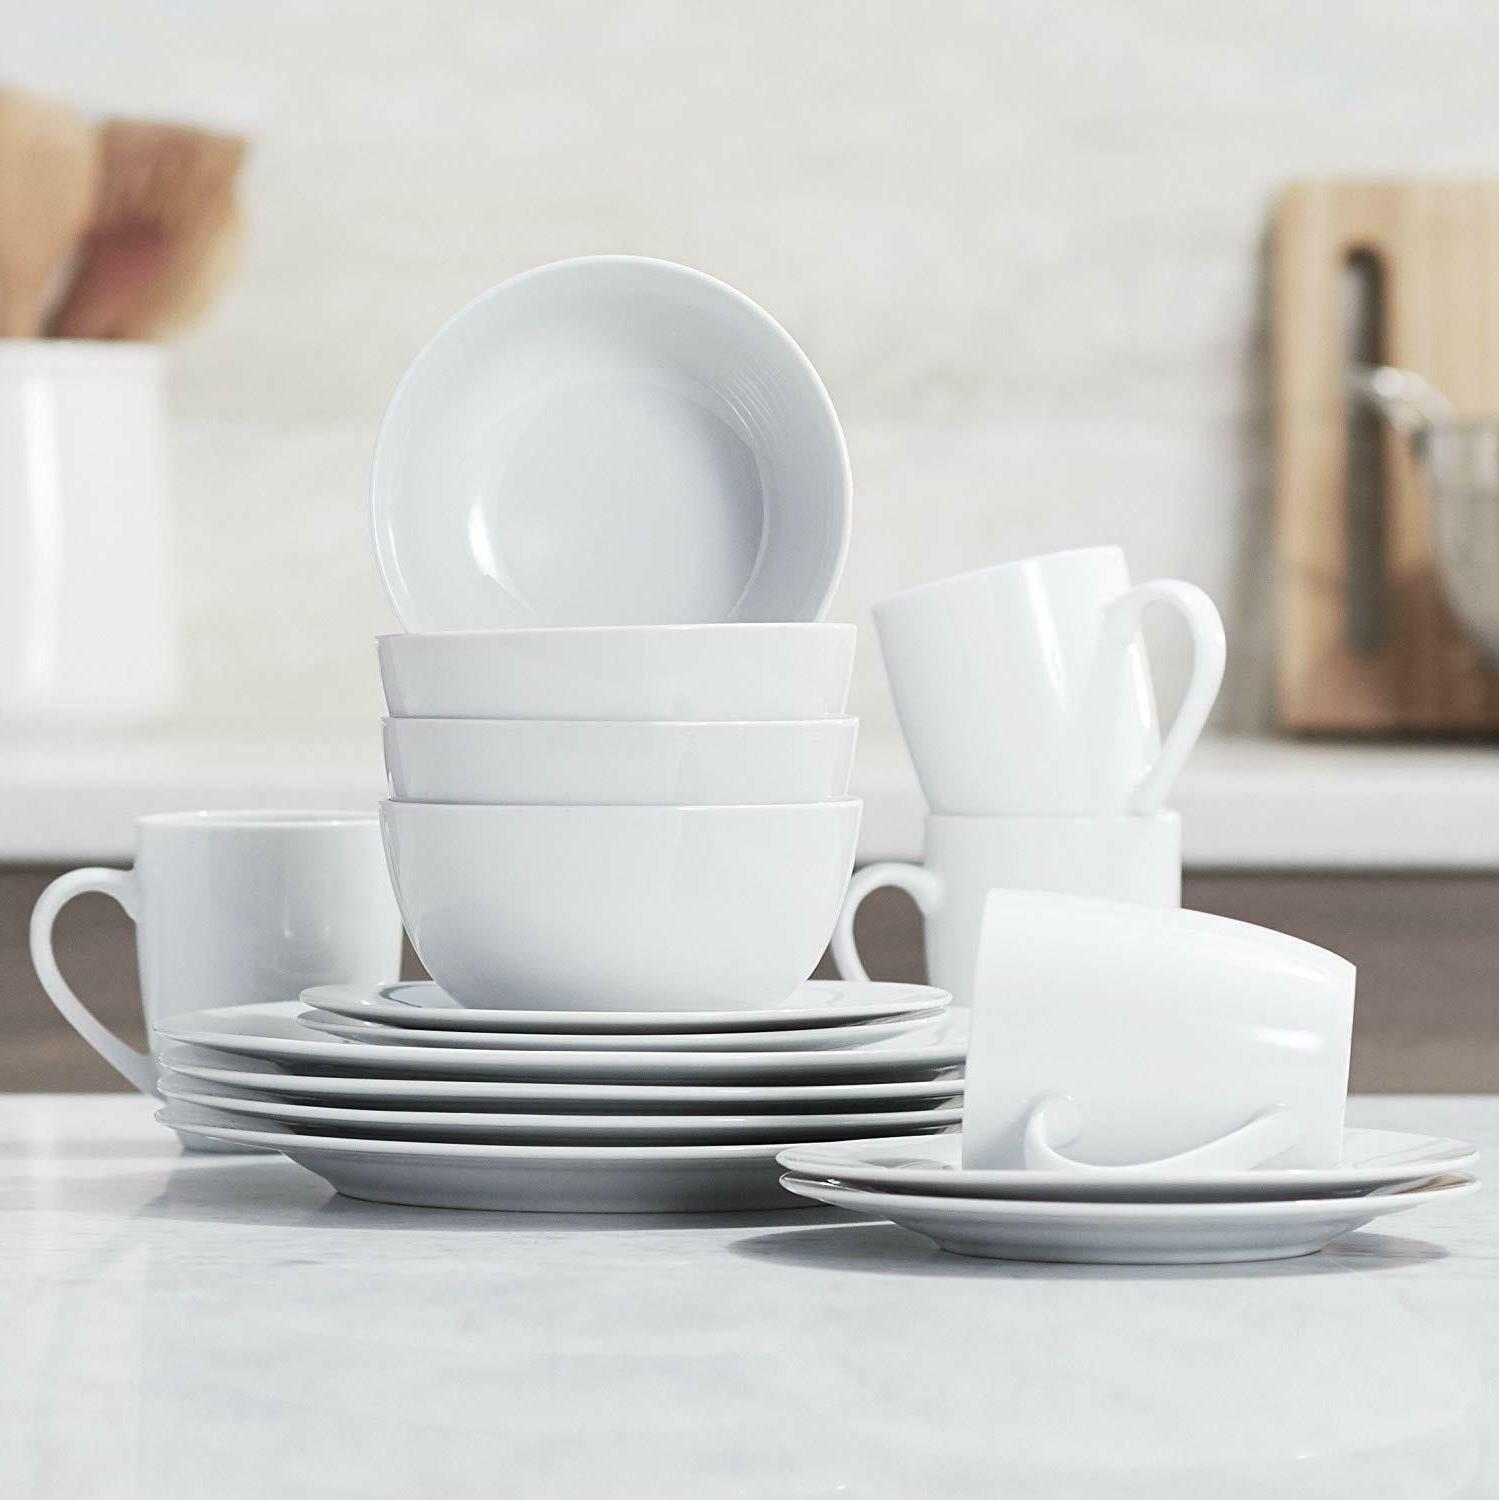 16-Piece Dinnerware Service for 4